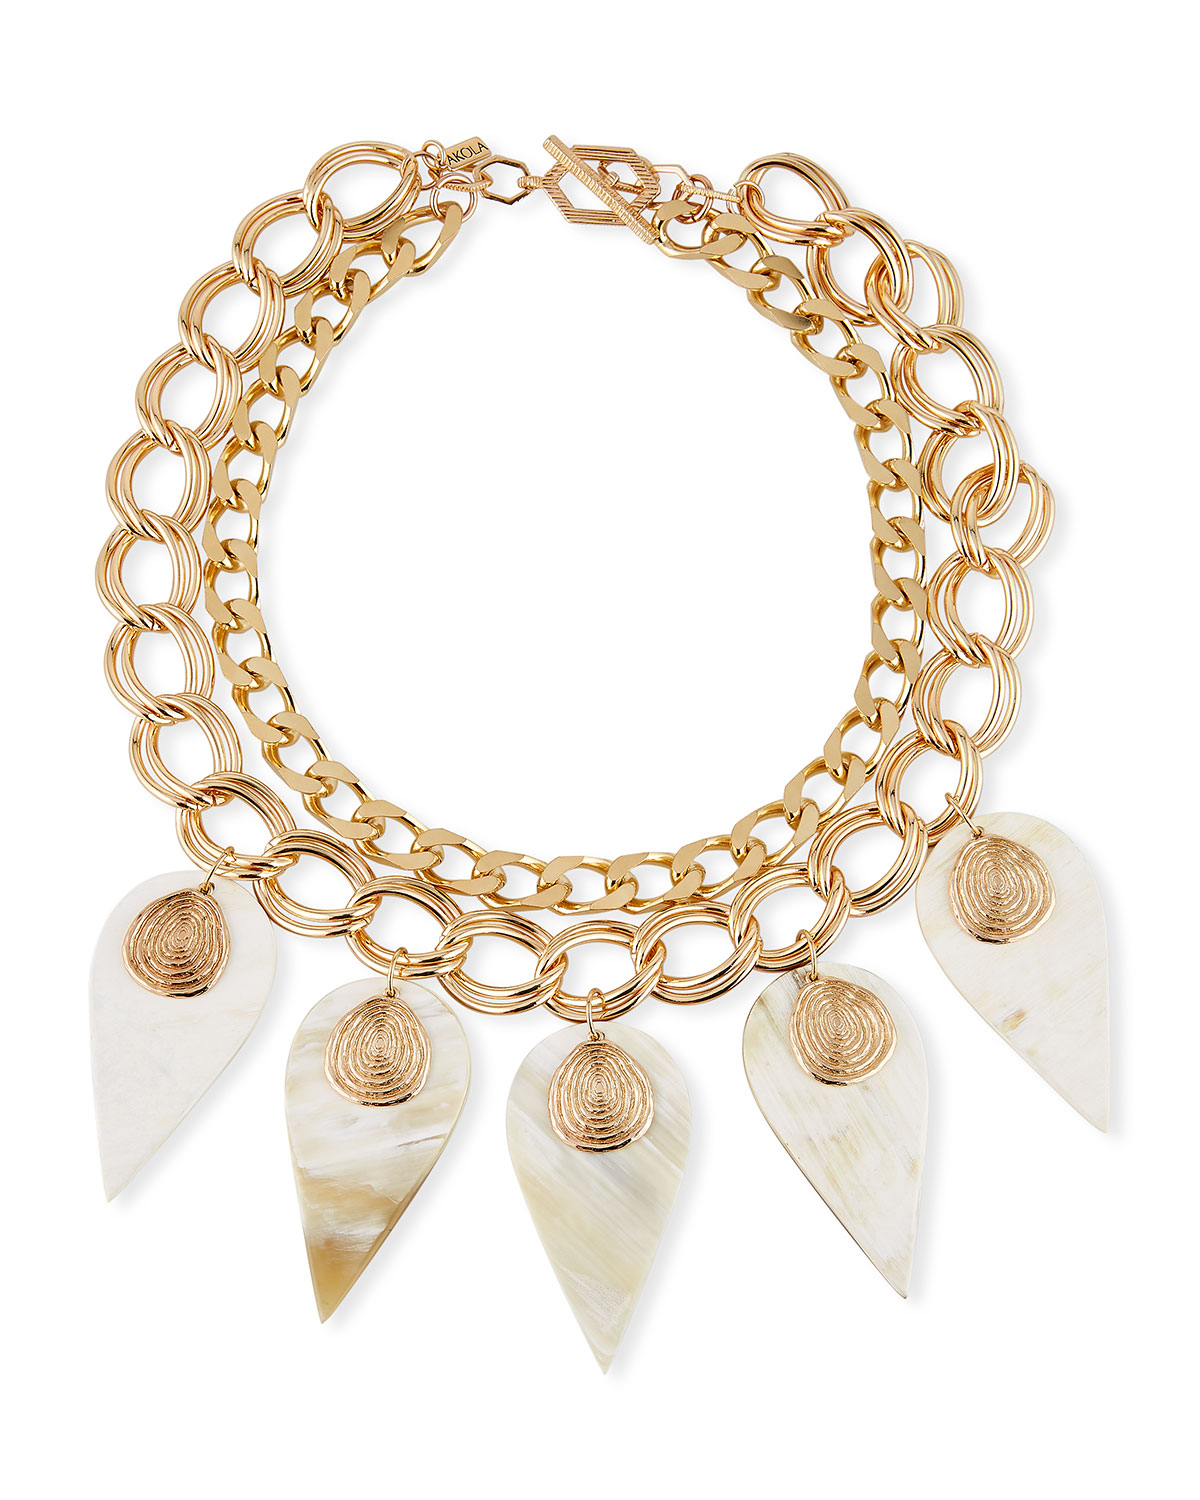 Akola Accessories White Horn & Chain Necklace